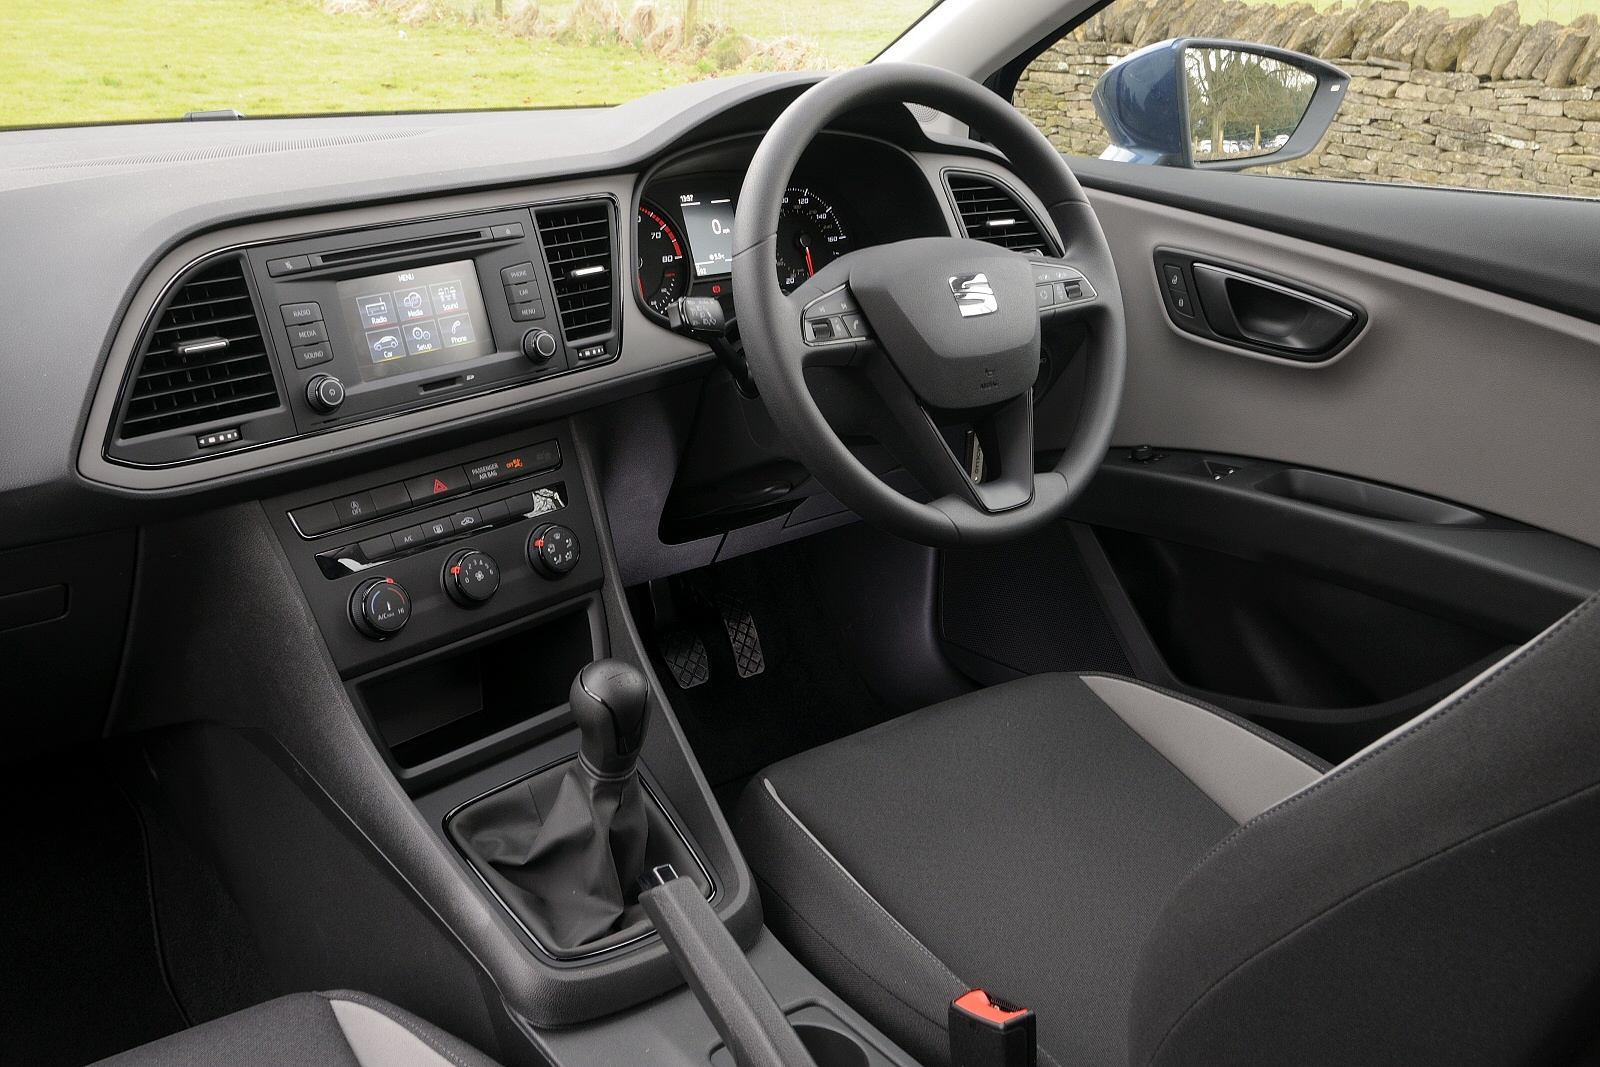 New seat leon 1 4 ecotsi 150 xcellence technology 5dr dsg for Interior seat leon